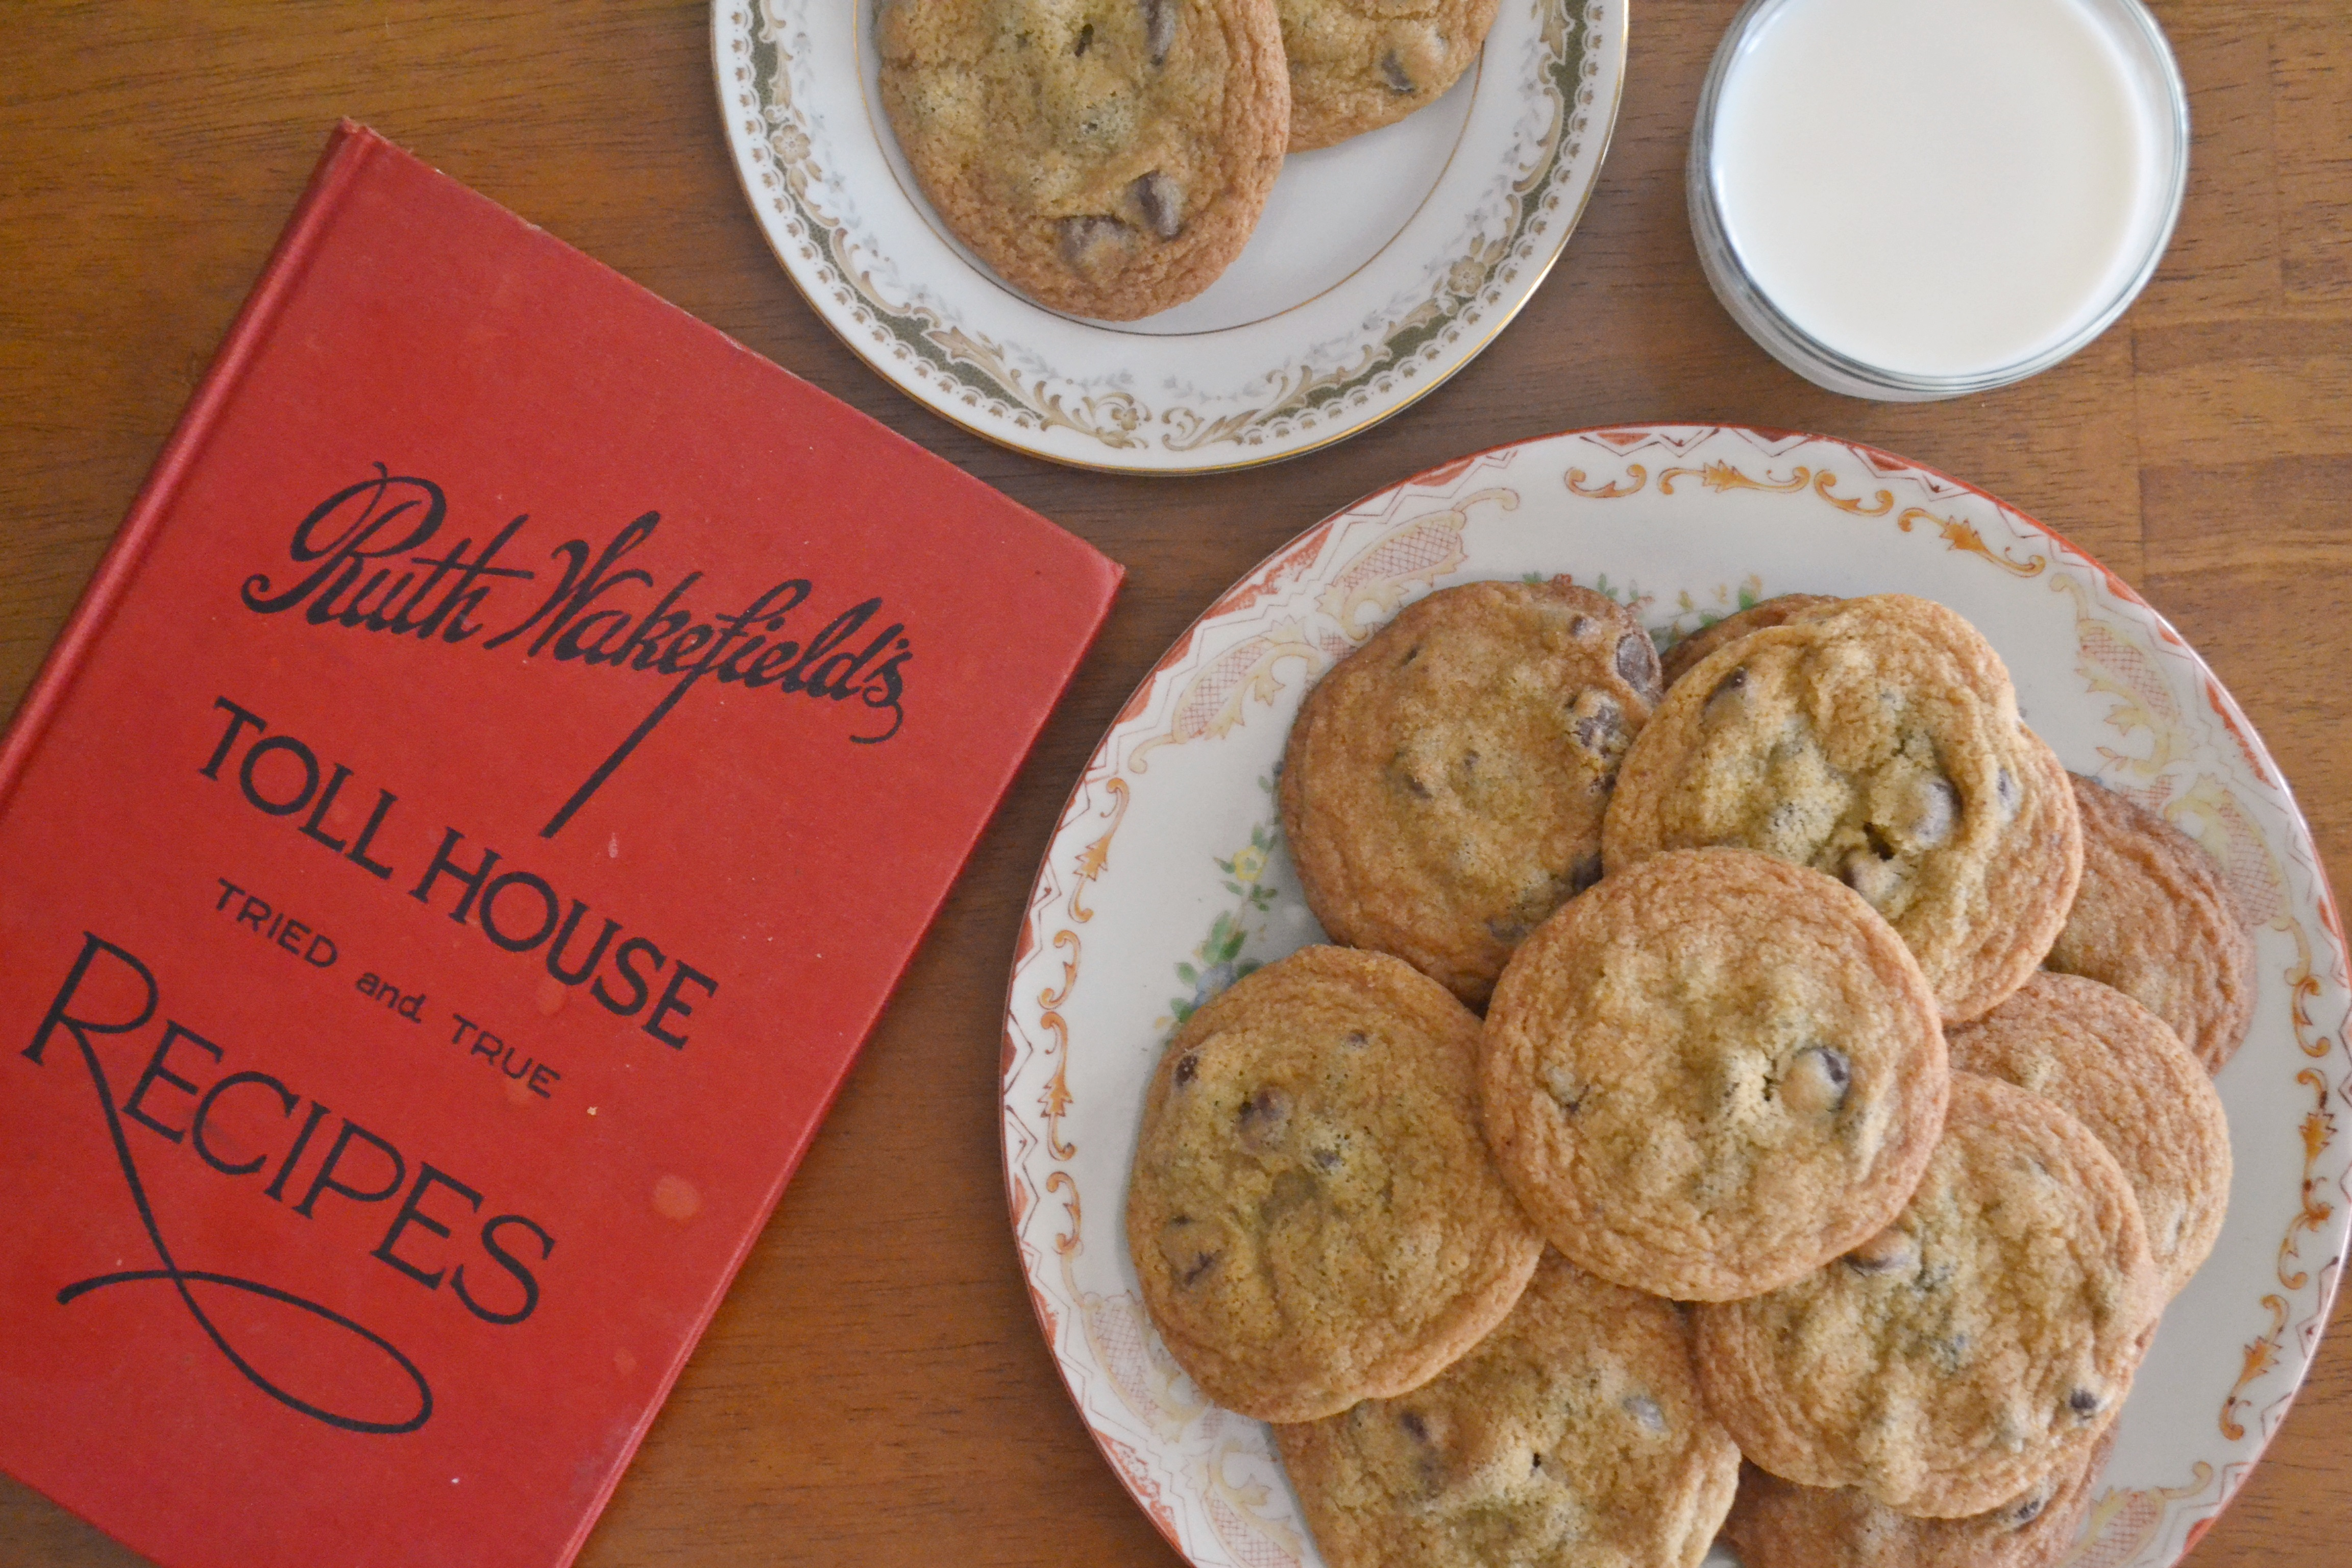 Toll House Cookies | The Original Chocolate Chip Cookie